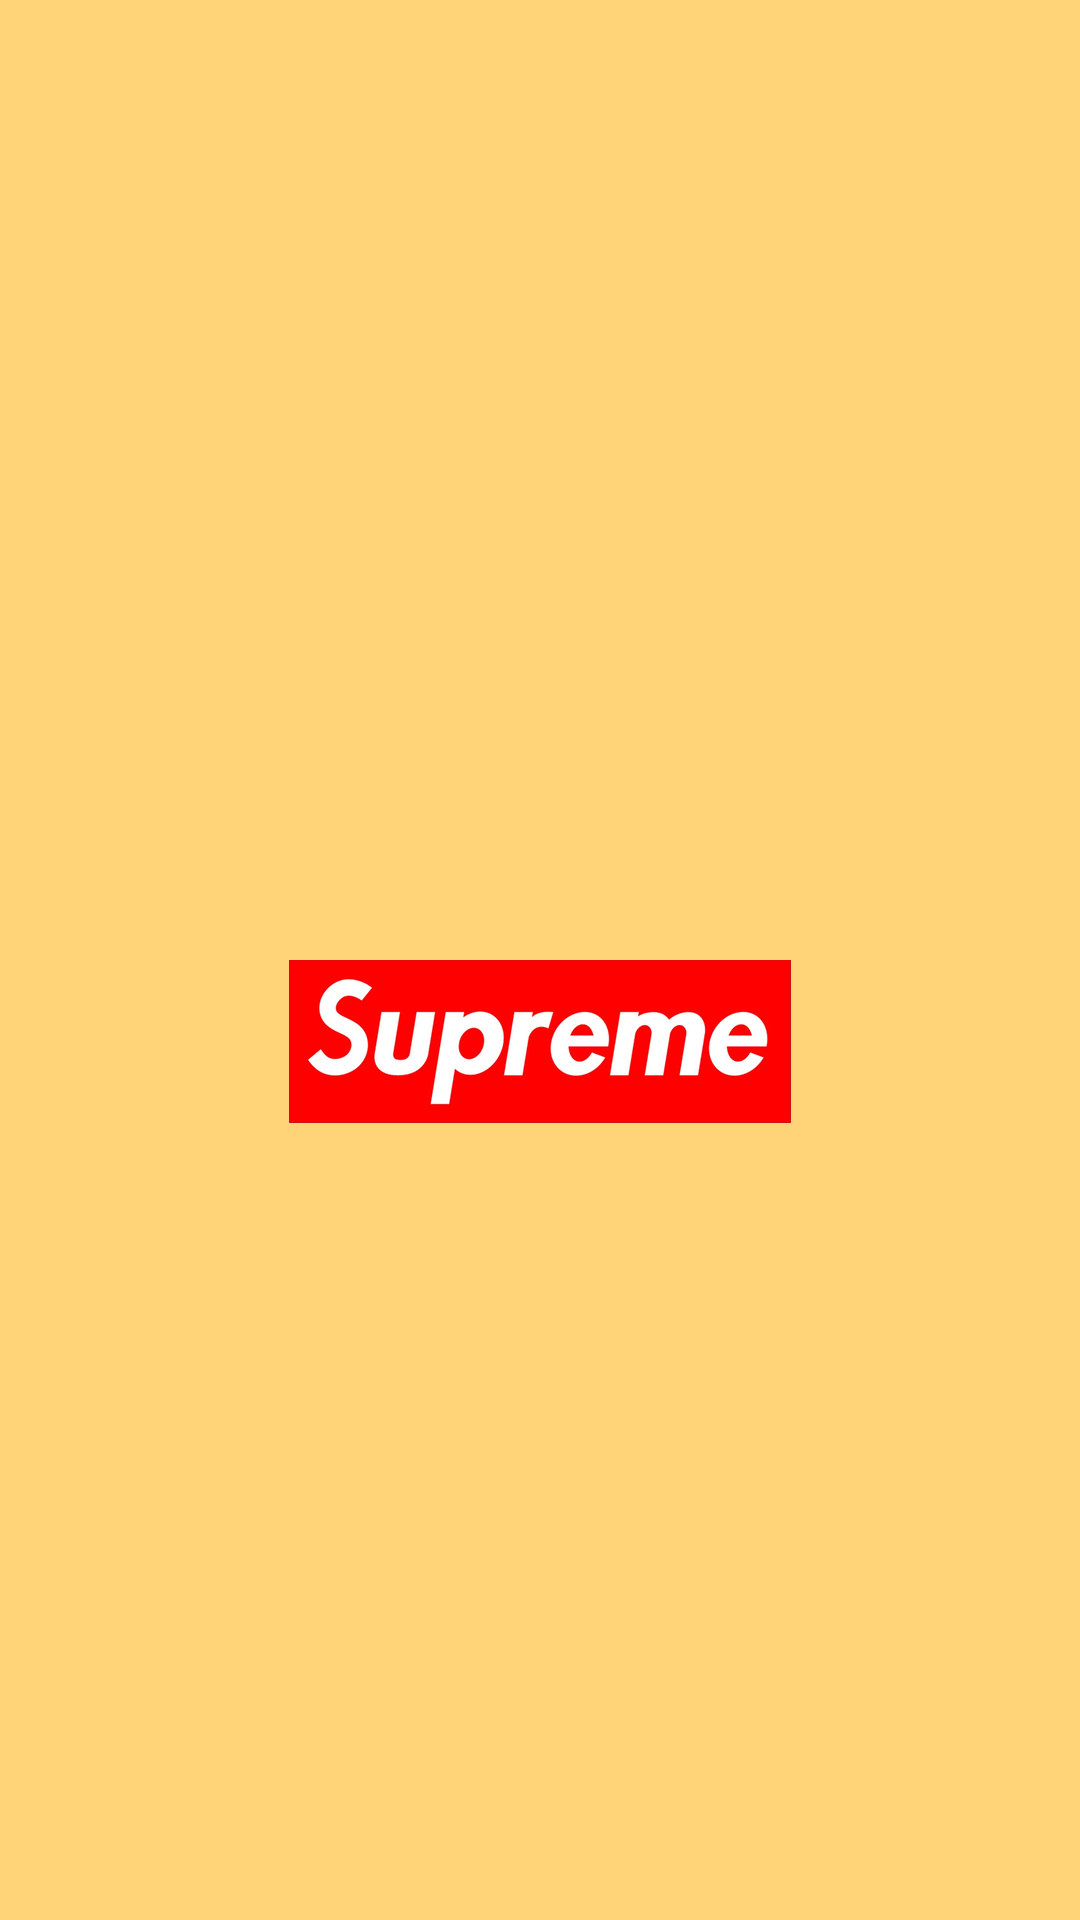 supreme05 - 23 Supreme HQ Smartphone Wallpaper Collection